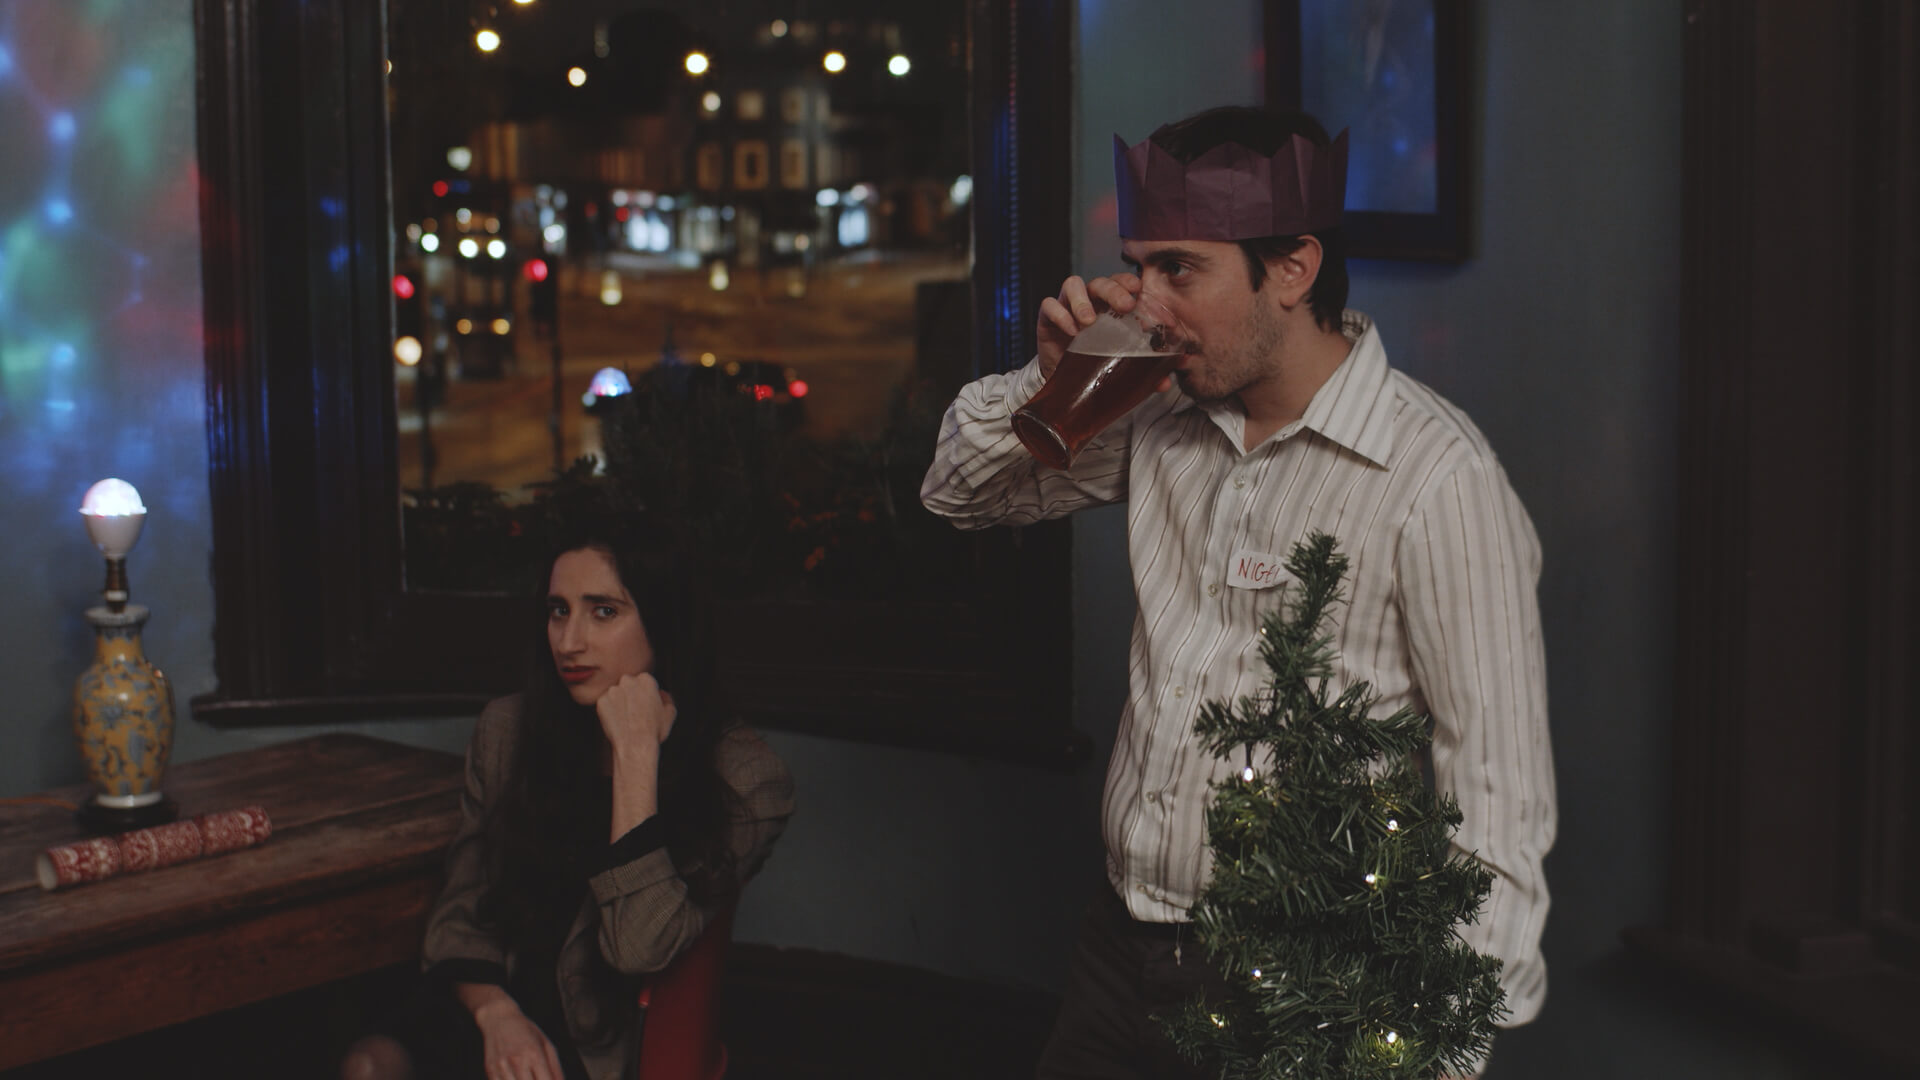 People drinking at the City Night's Office Christmas Party